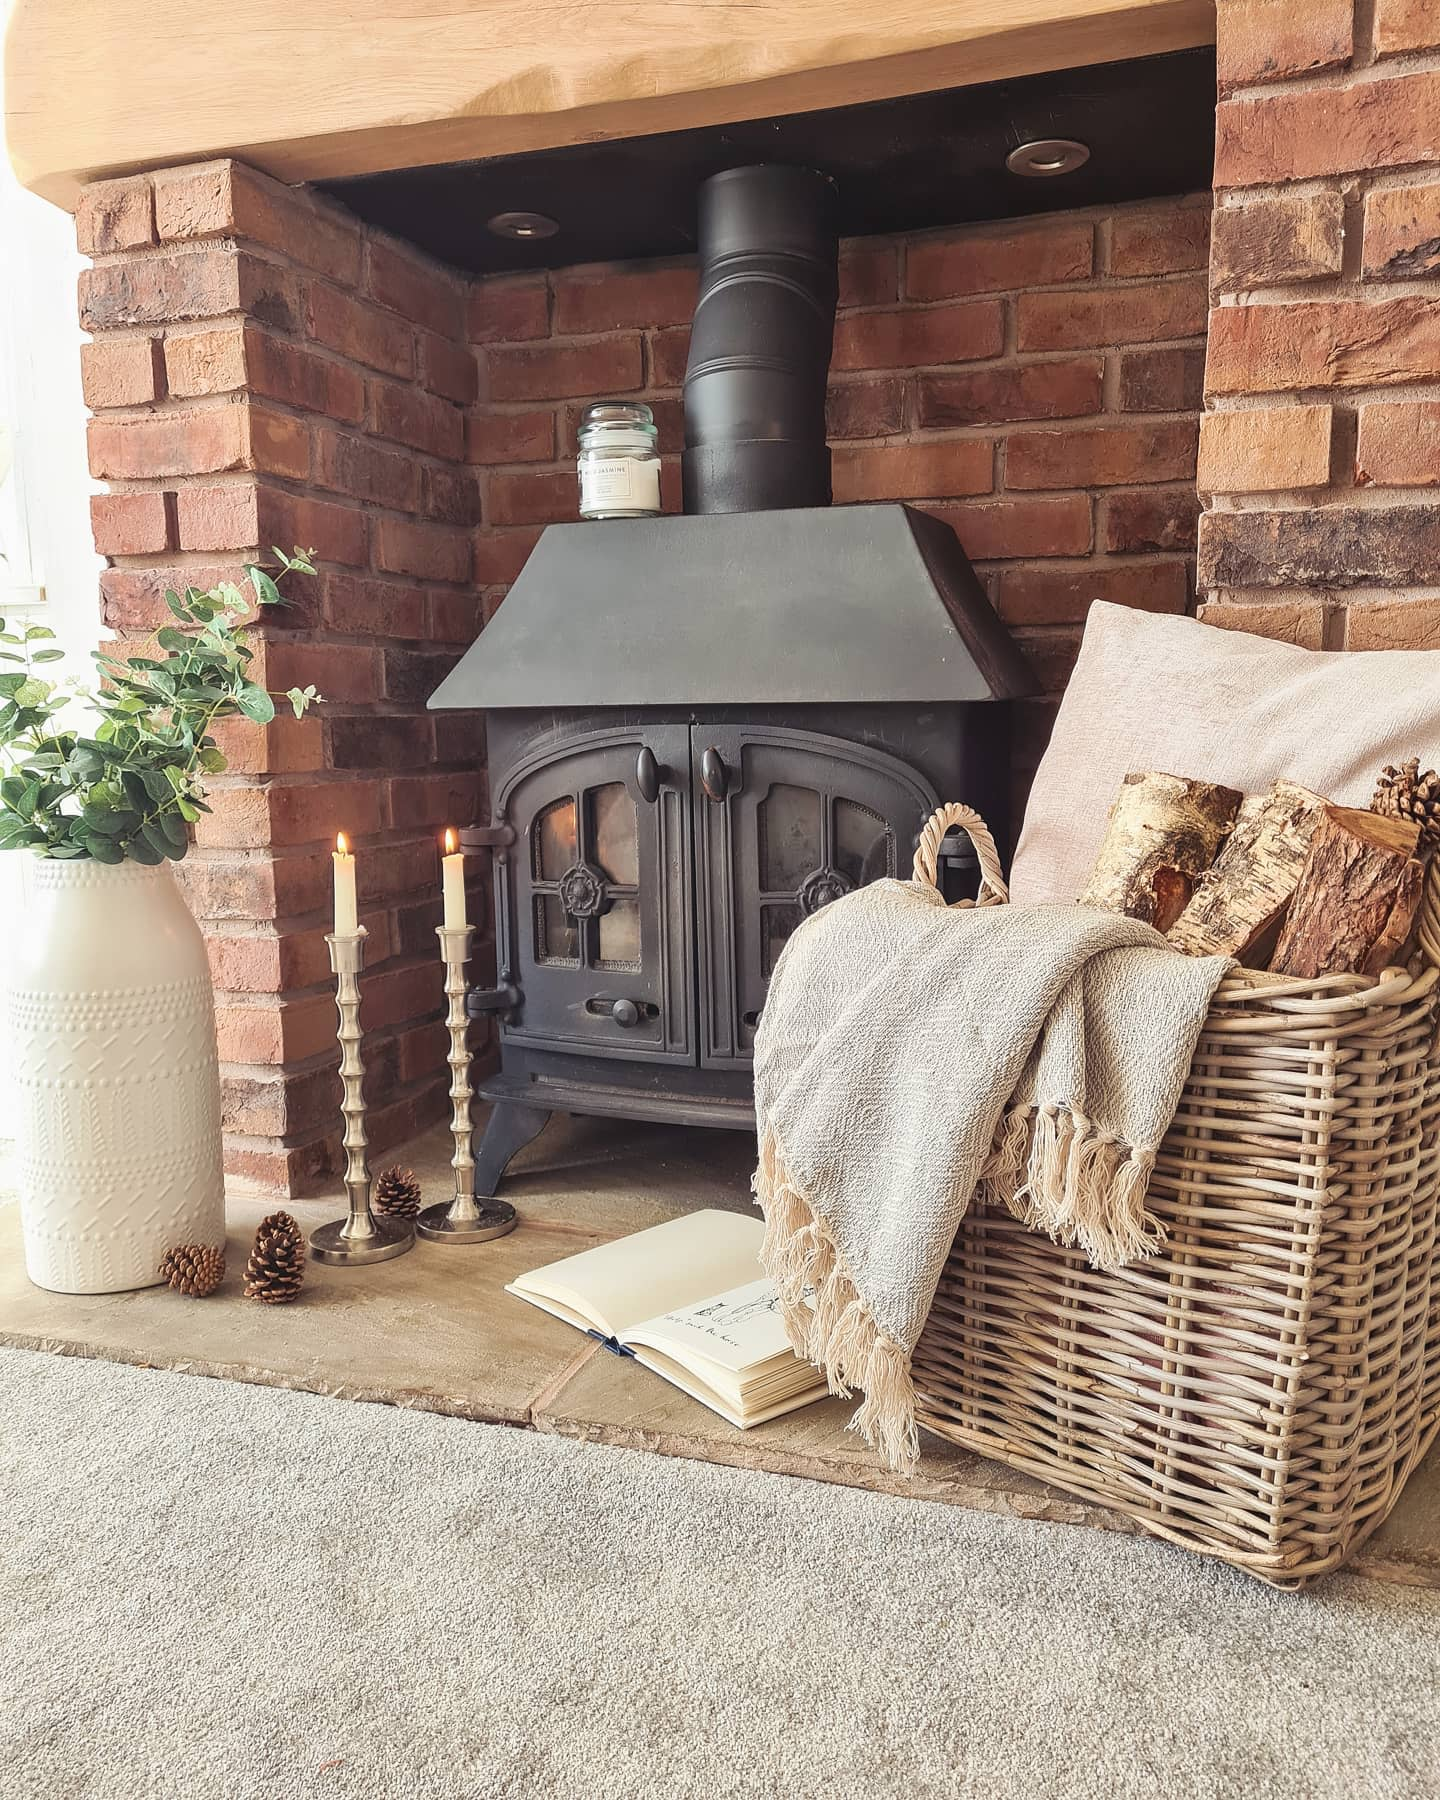 Hearth Fireplace Decor Ideas -my.white.house.by.the.seaside